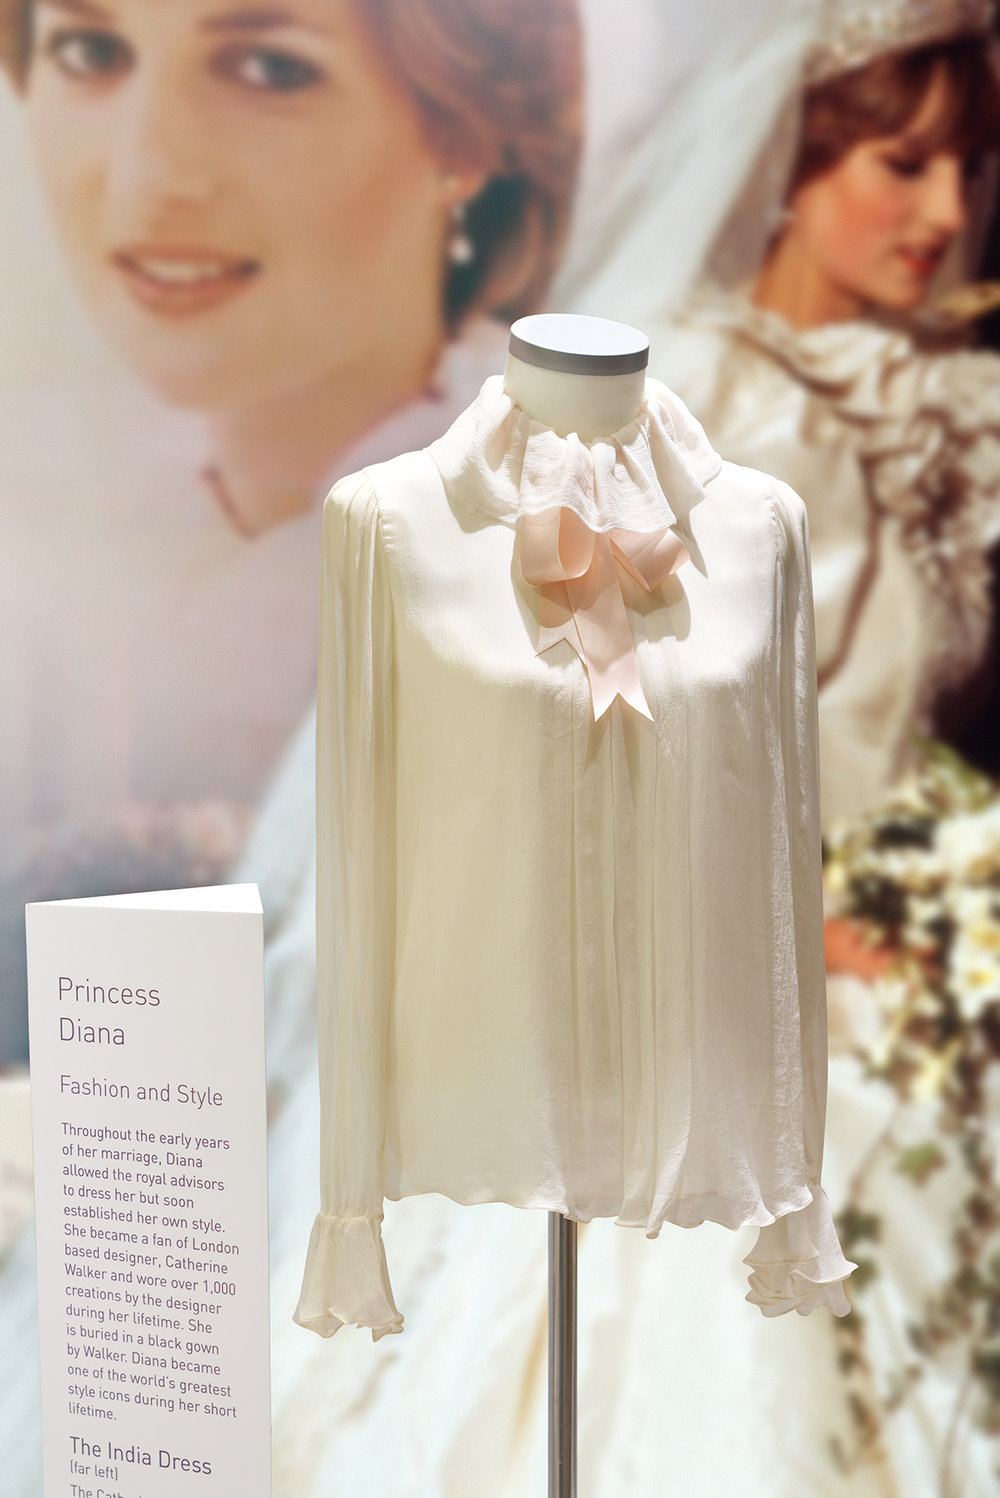 The David & Elizabeth Emanuel designed 'Engagement Blouse'.